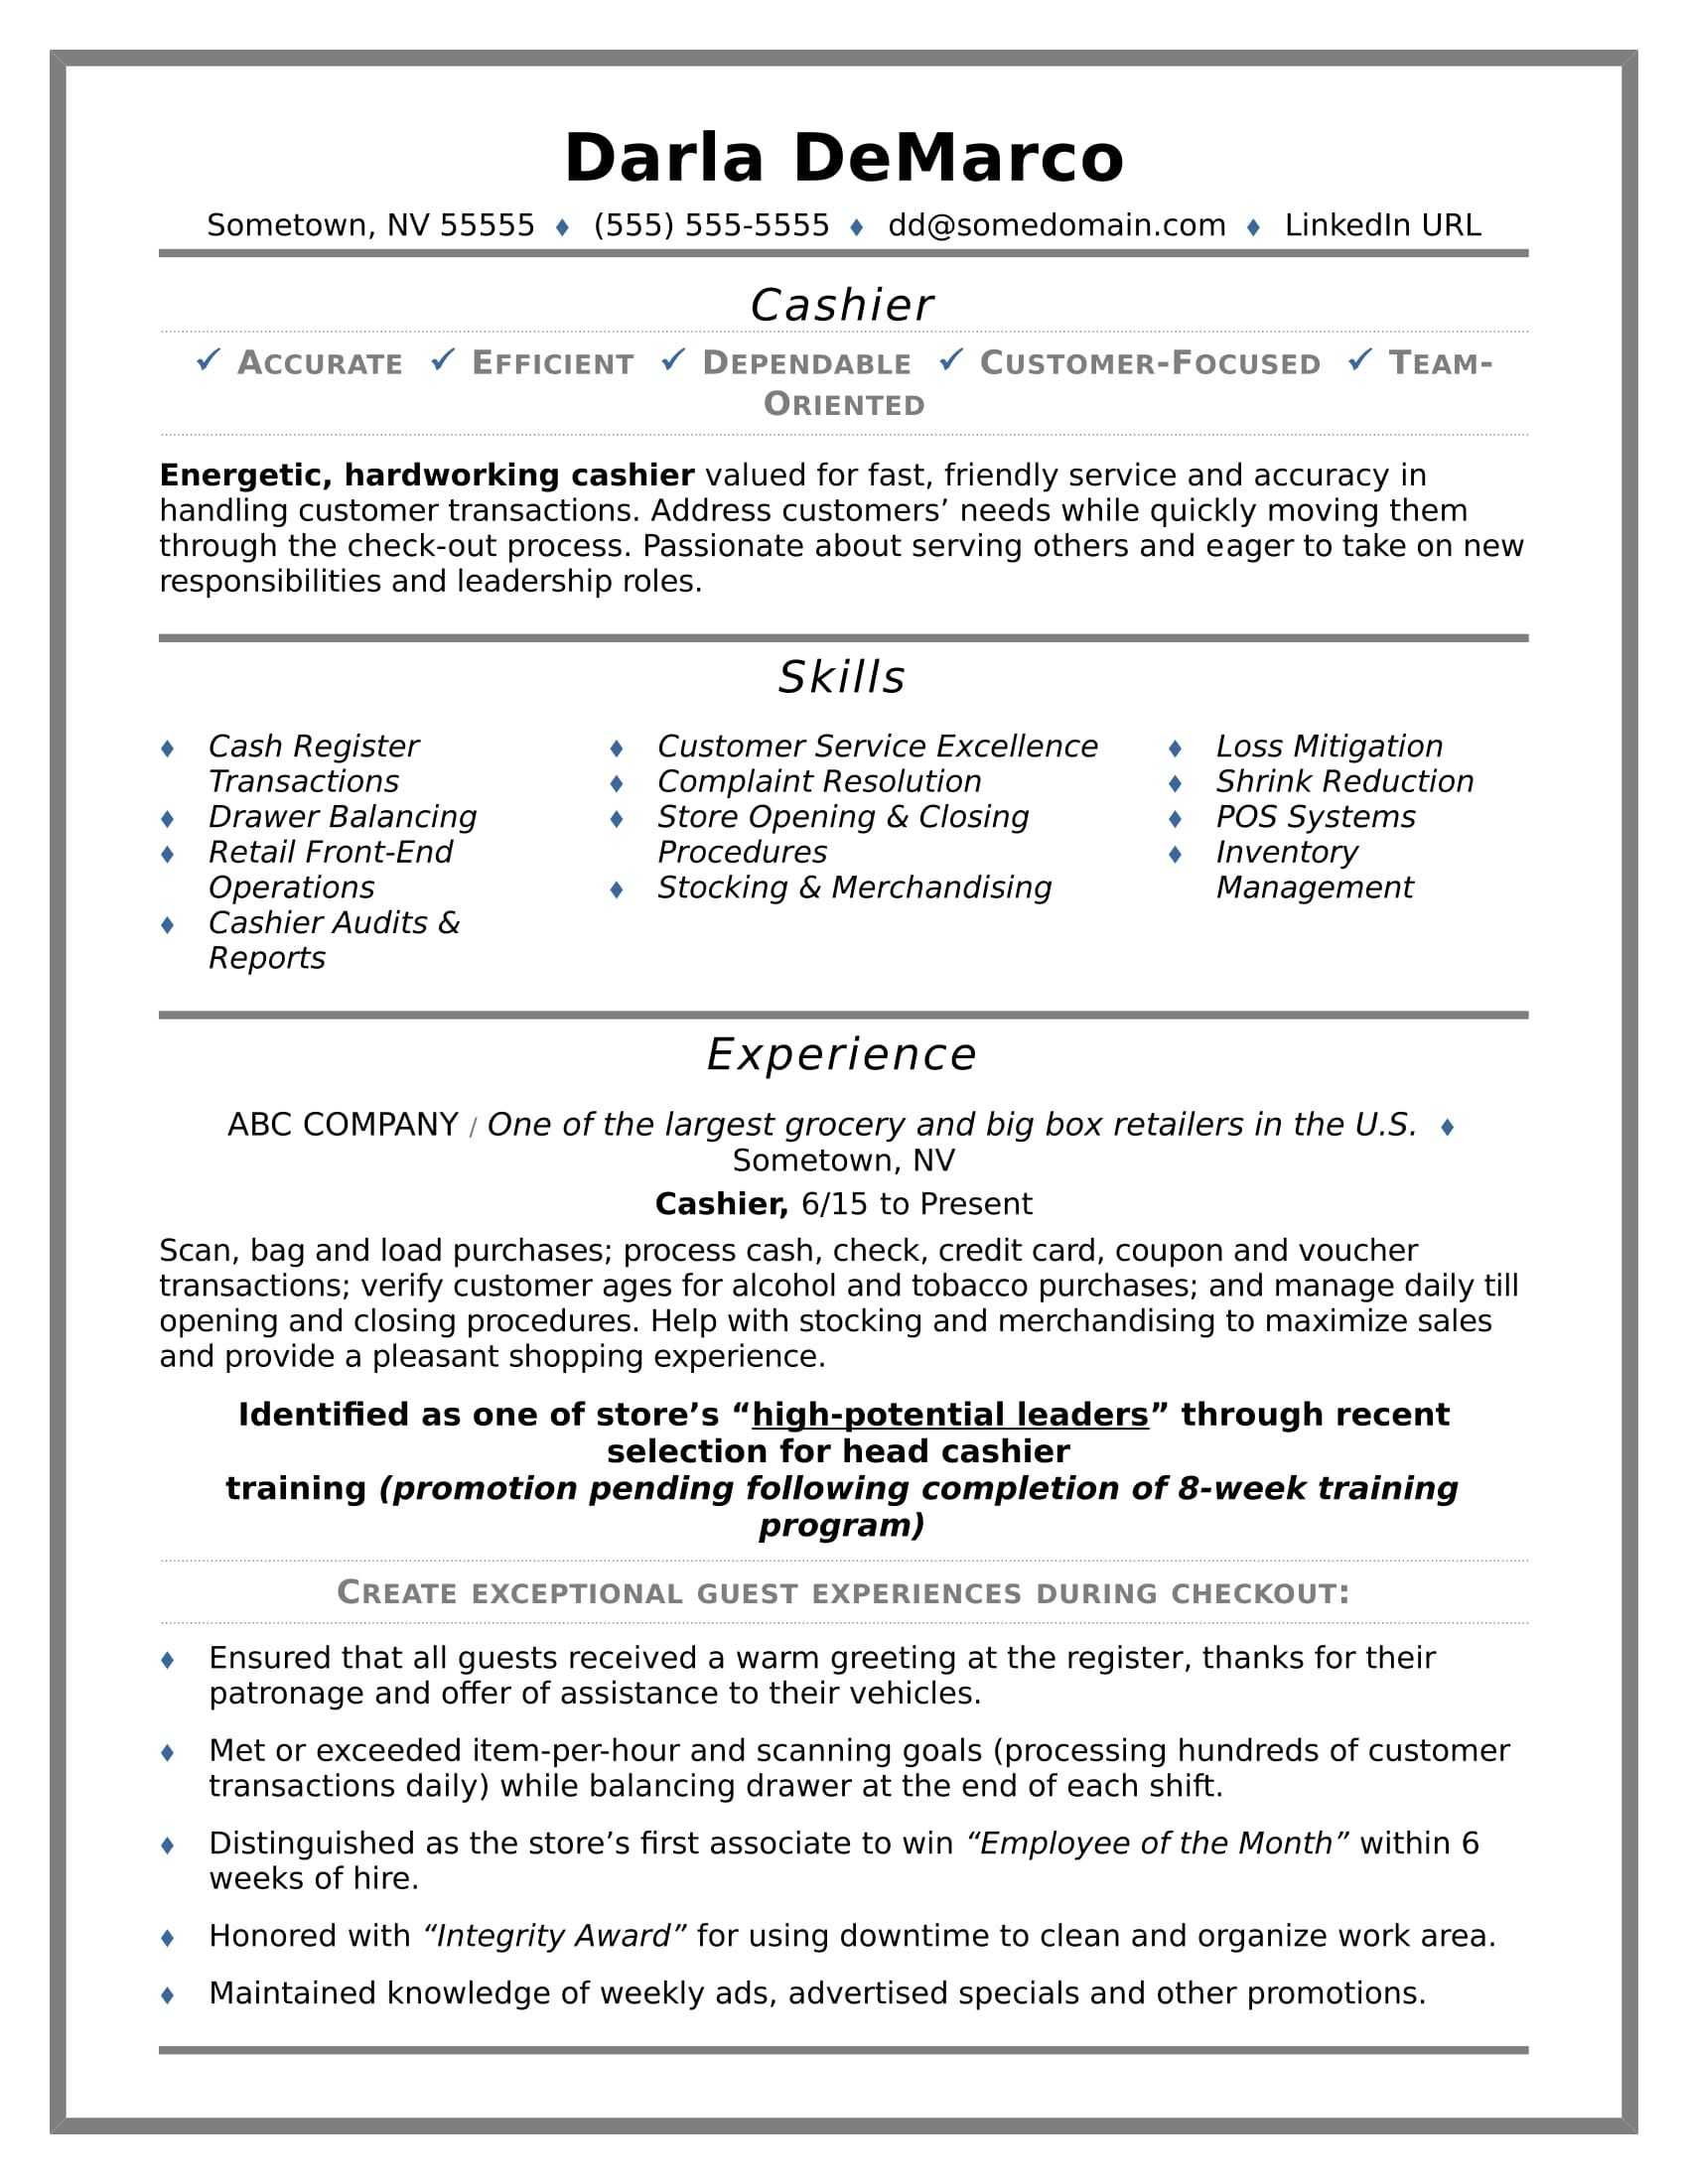 Cashier Resume Sample With Images Job Resume Examples Resume